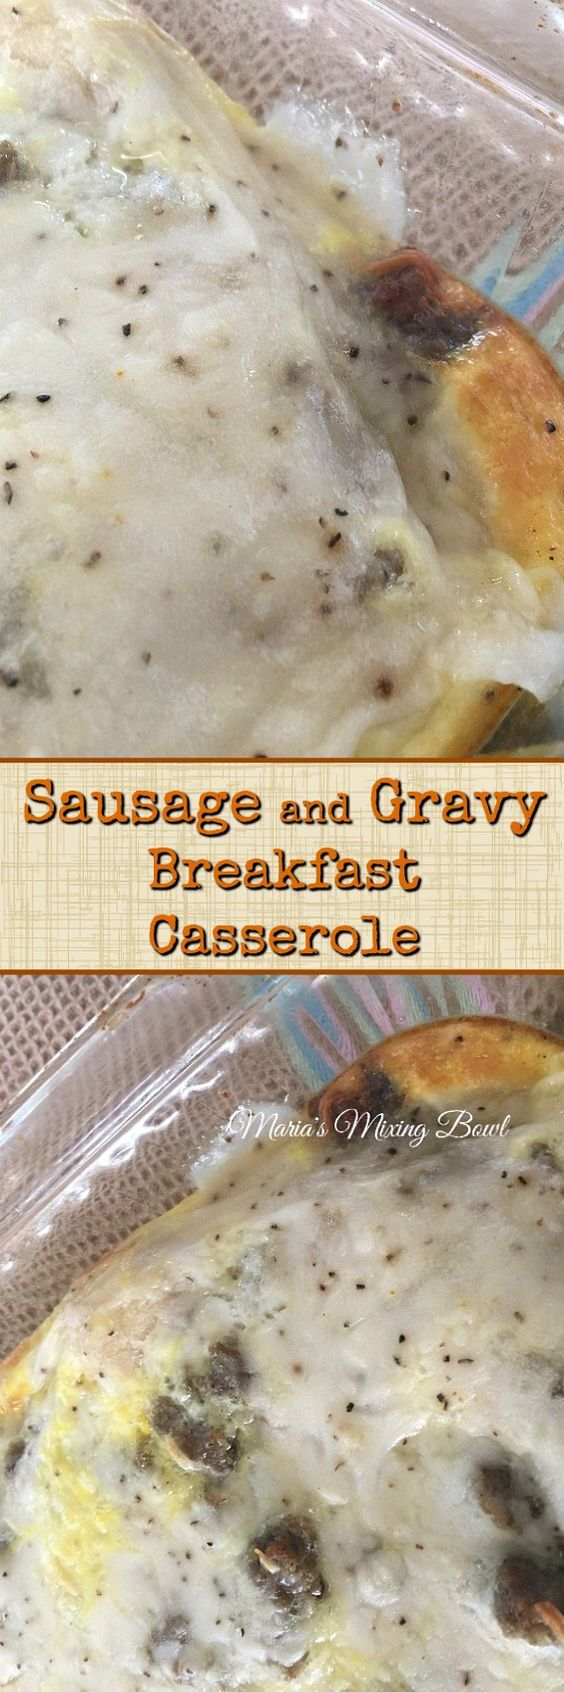 Sausage and Gravy Breakfast Casserole - Comforting, Hearty Breakfast Casserole That is Prepared the Night Before and Baked in the Morning! A family favorite!